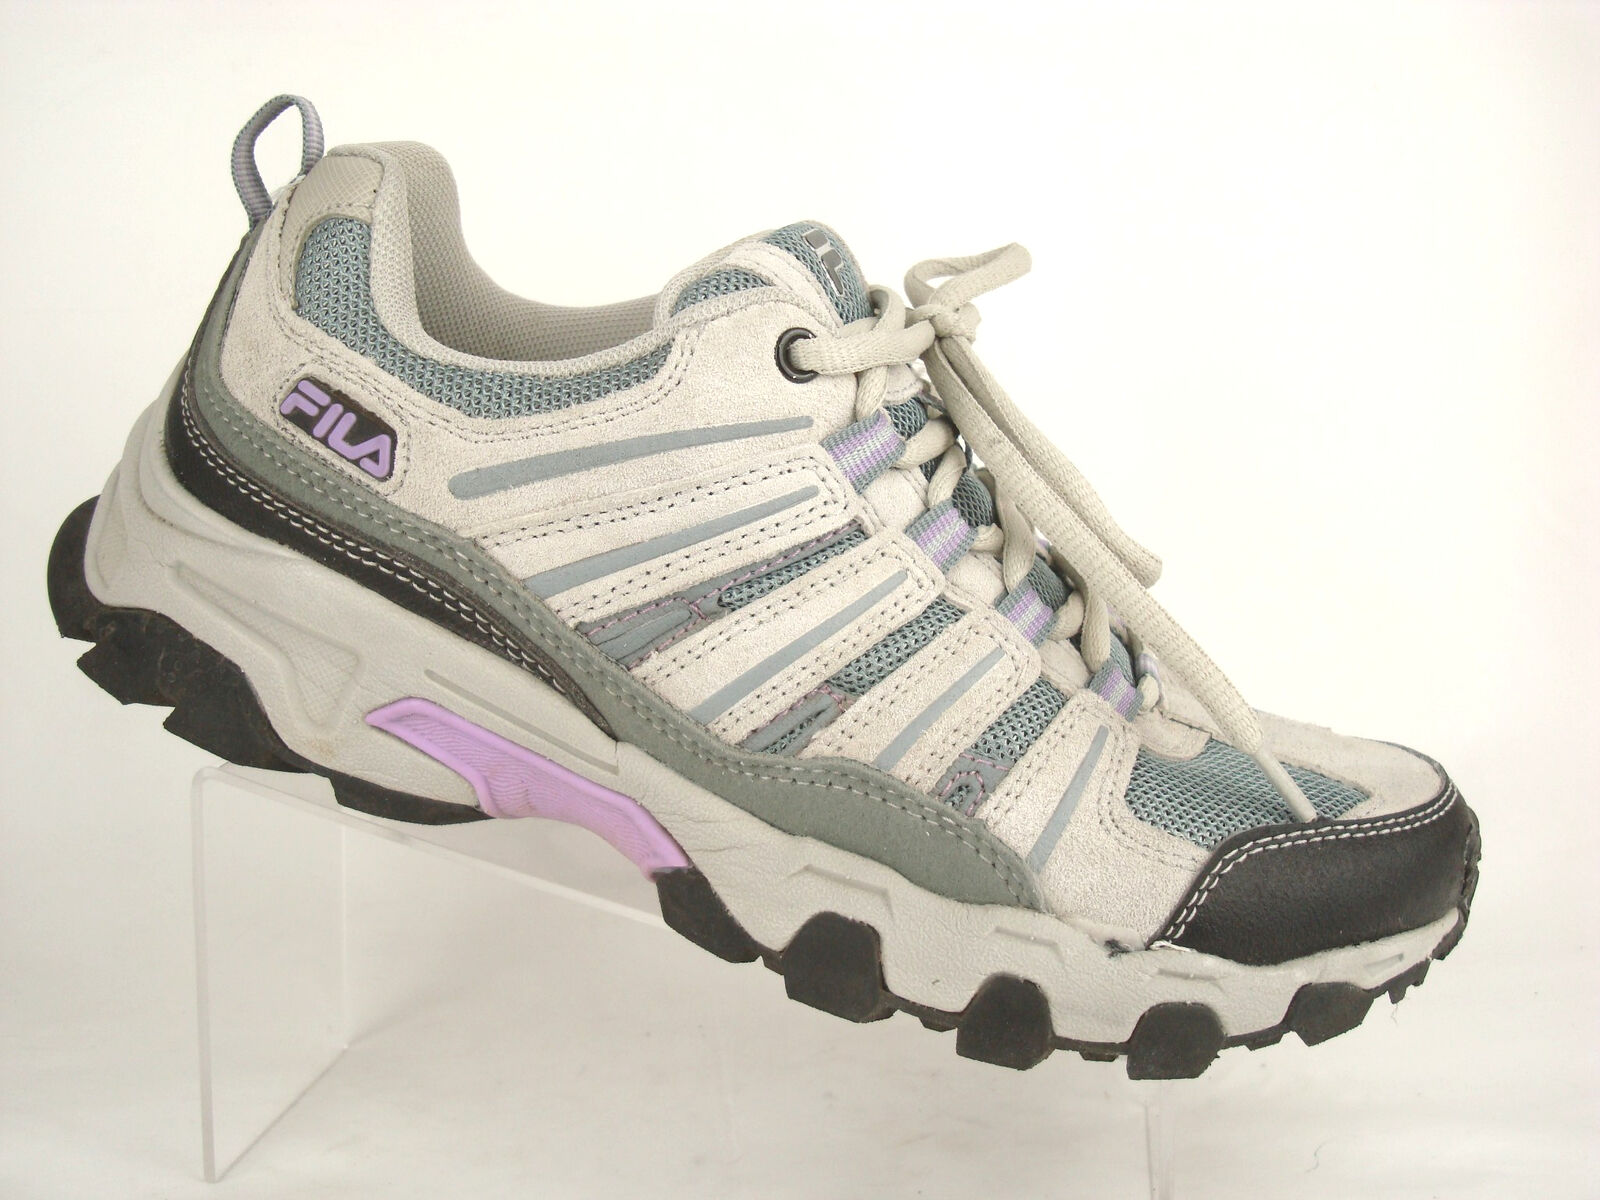 FILA 2017 Hiking Trail Running Sneaker Women US 8 Leather Synthetic Wild casual shoes